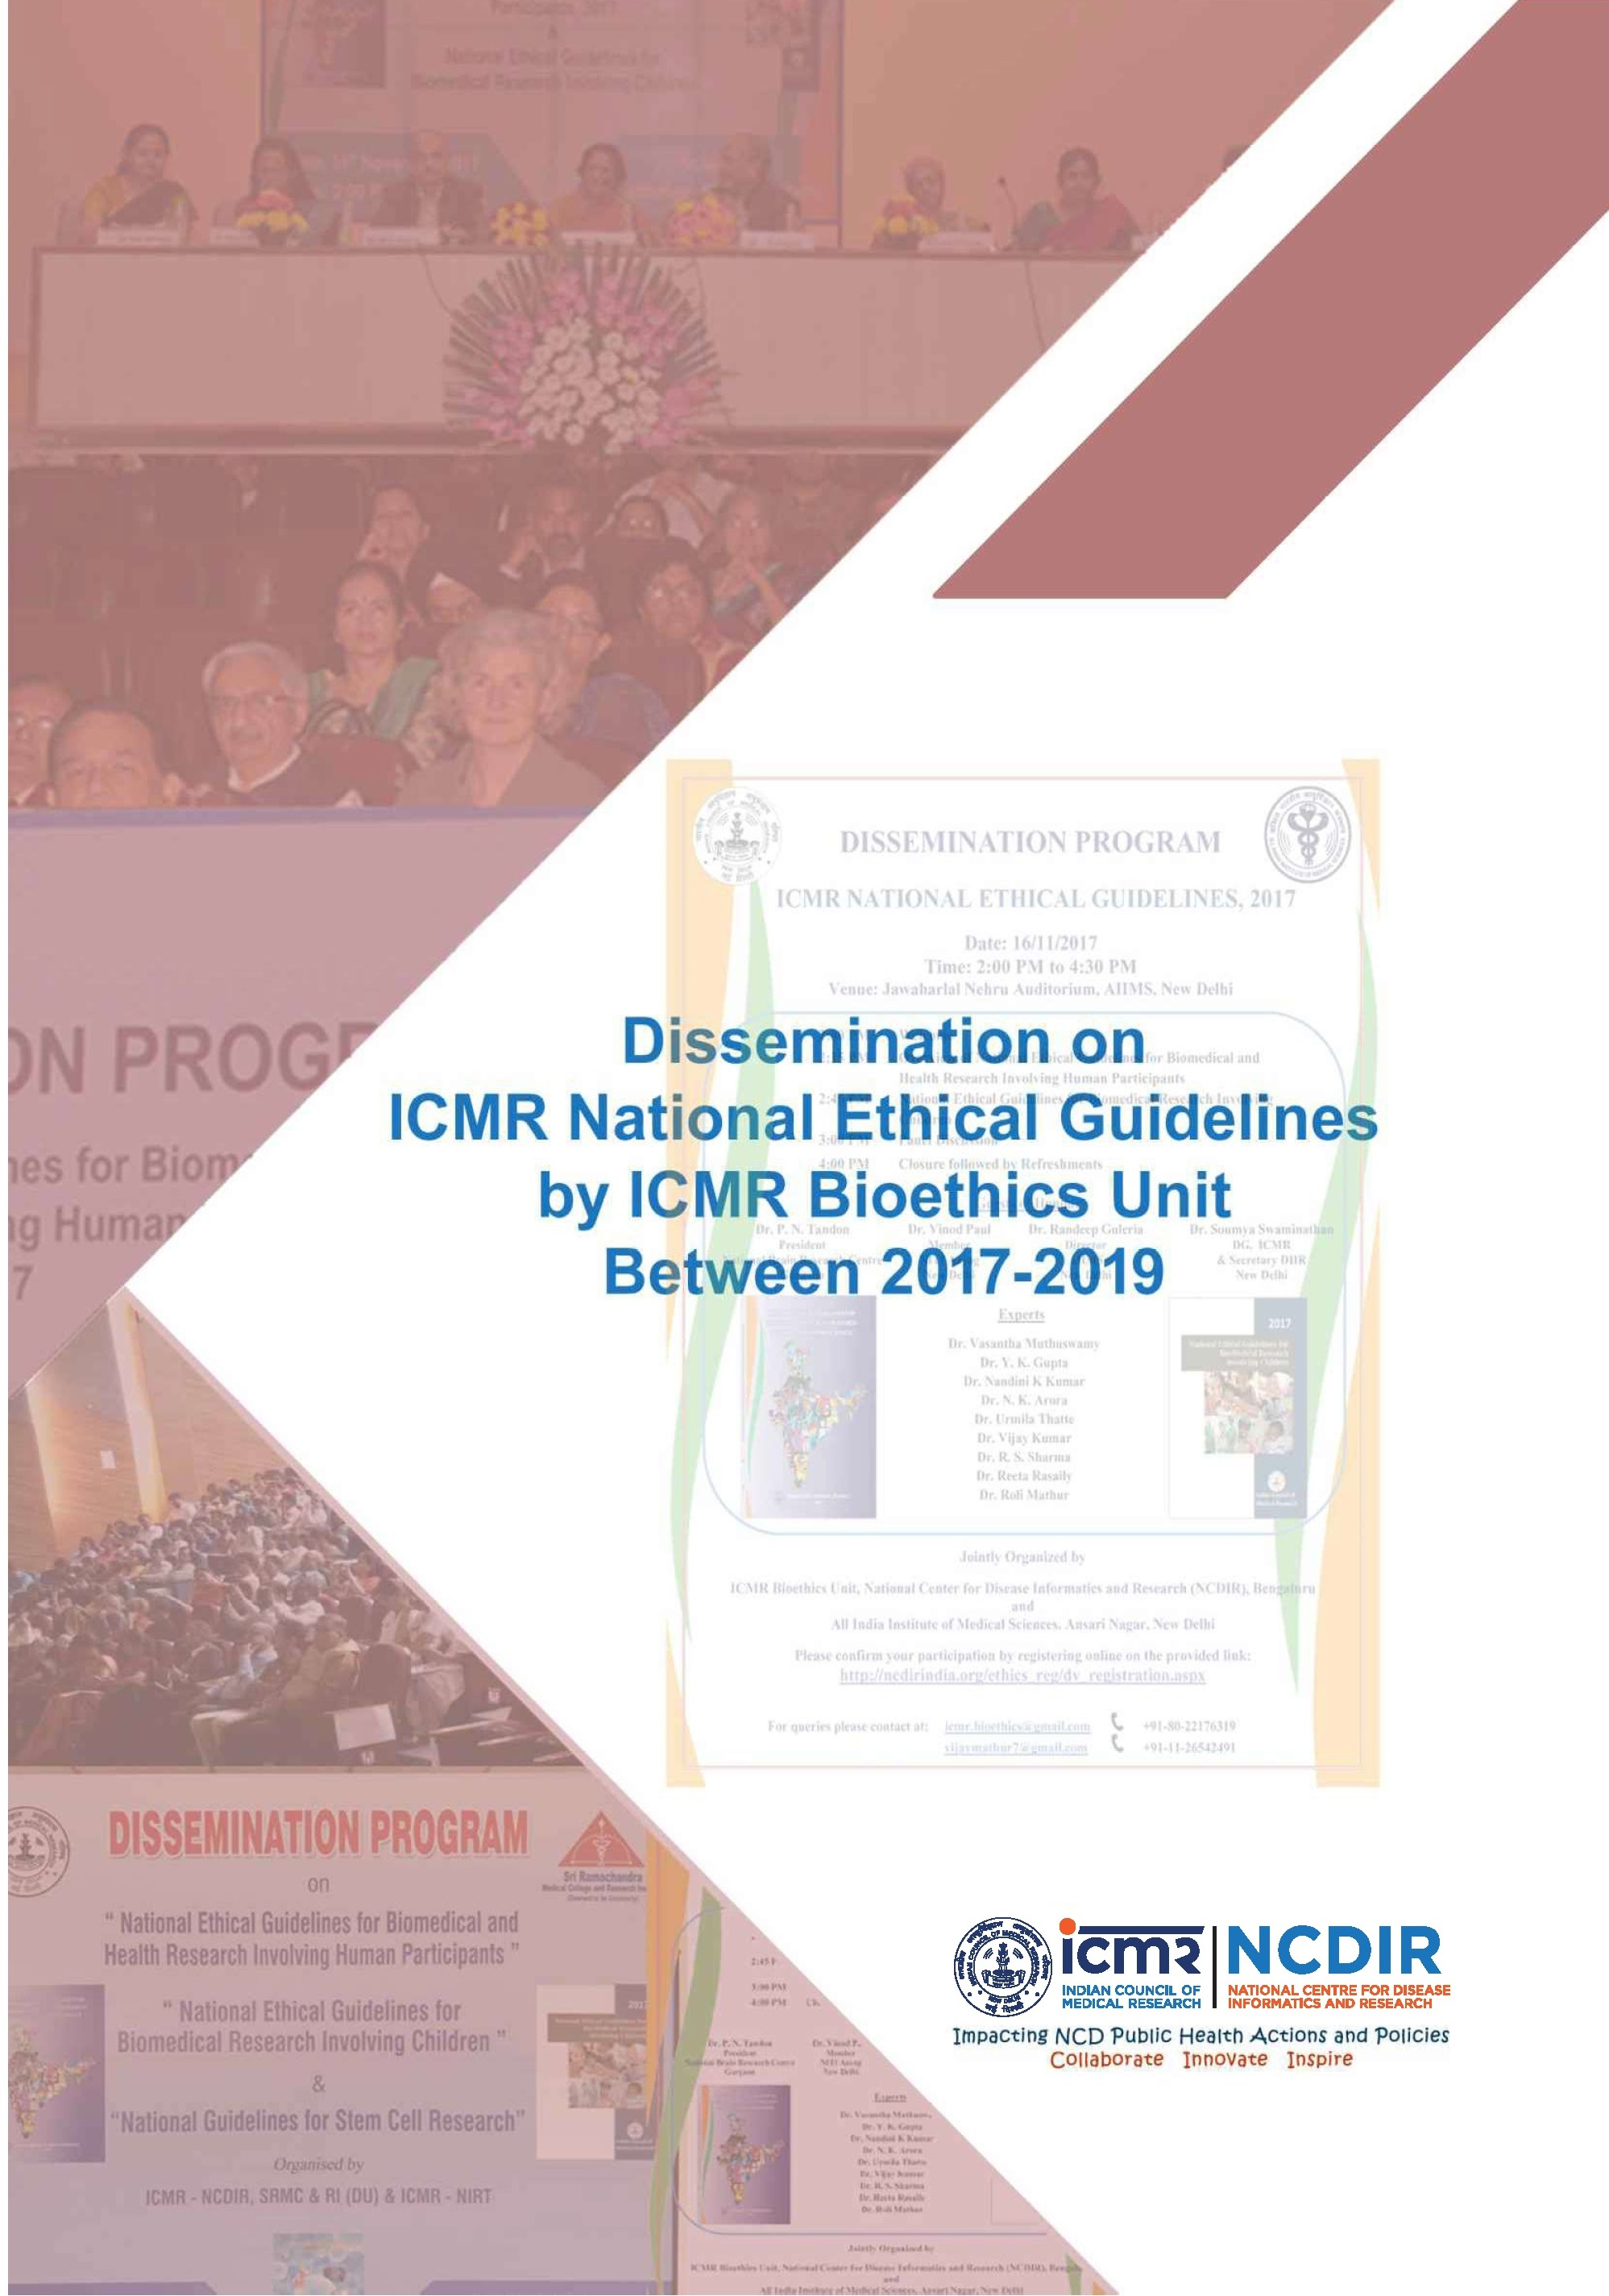 Dissemination Report on ICMR National Ethical Guidelines by ICMR Bioethics Unit,2020